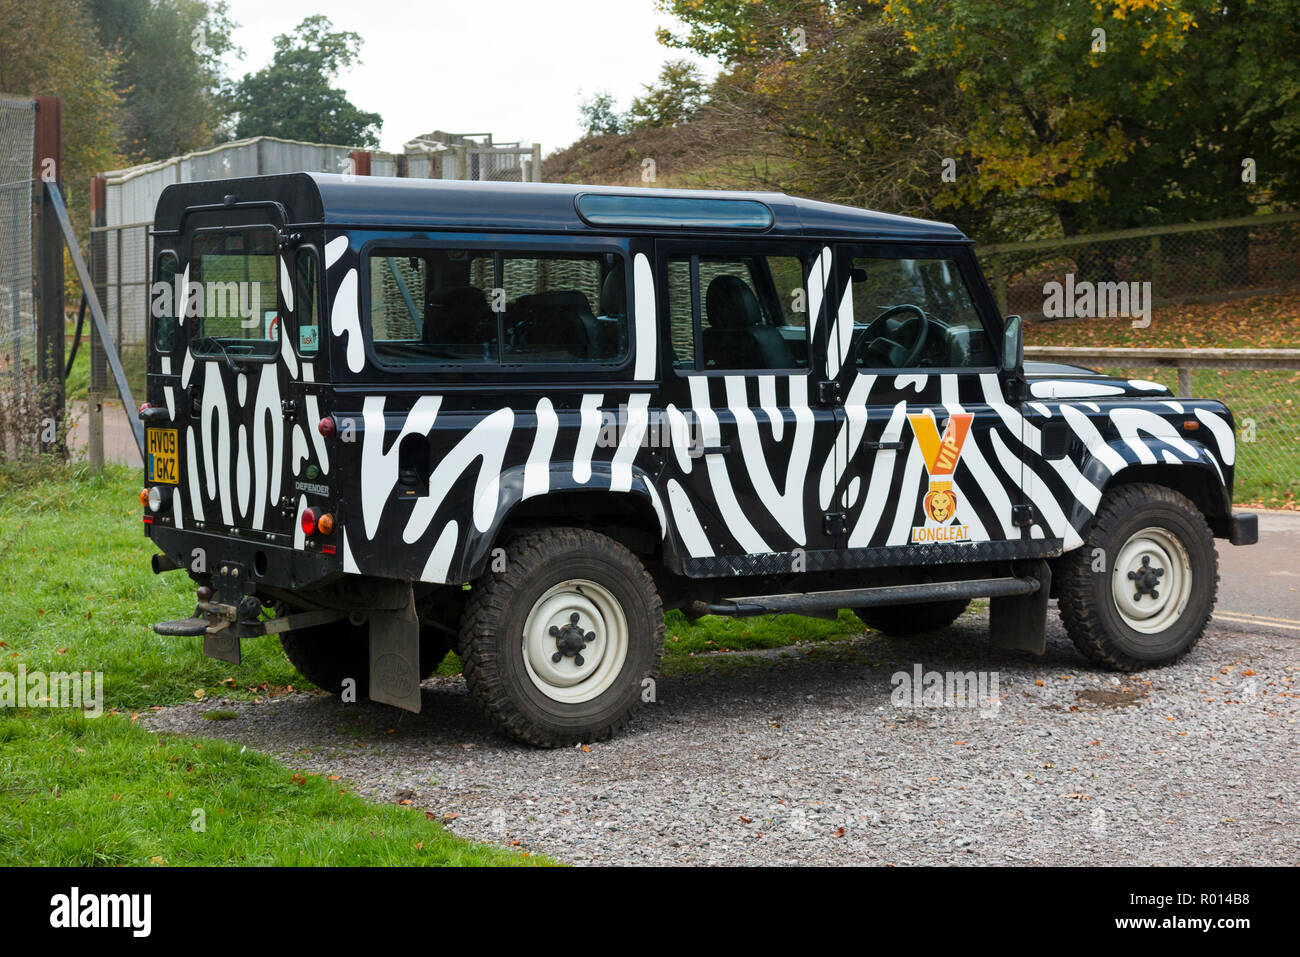 VIP Safari Park Land Rover vehicle / car – in zebra striped stripy camouflage markings – for giving guests a tour at Longleat Safari Park Wiltshire, England, UK (103) - Stock Image